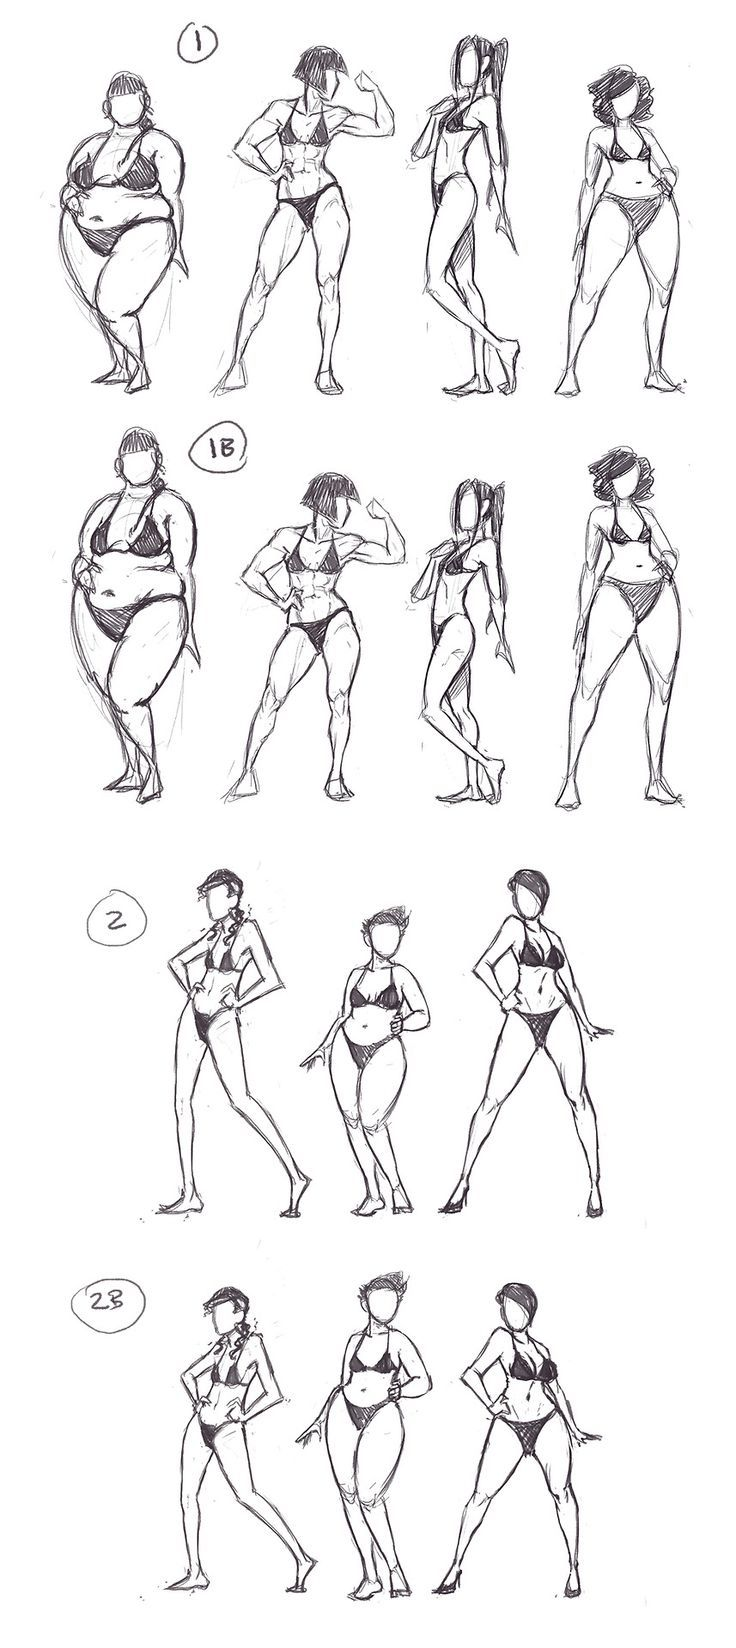 17 best images about 8986 health fitness stuff a plethora of well written essays exist examining the lack of variety in body types in comics especially concerning female characters